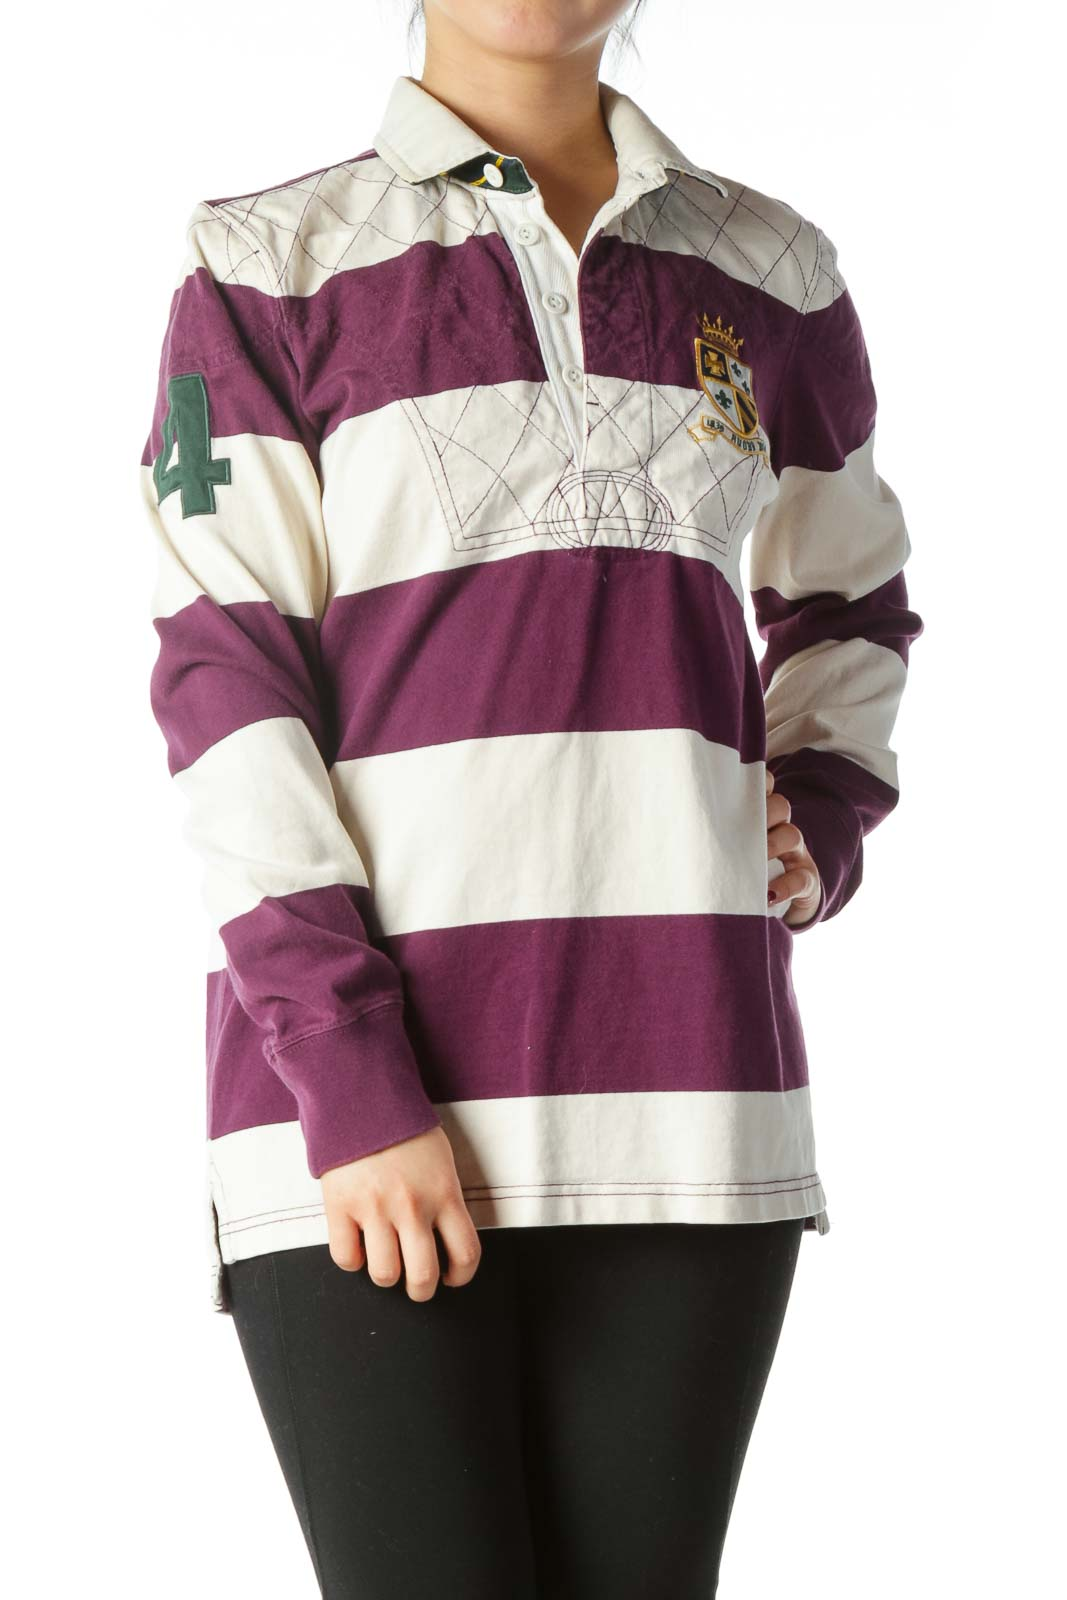 Purple Cream Striped 100% Cotton Knit Sports Top